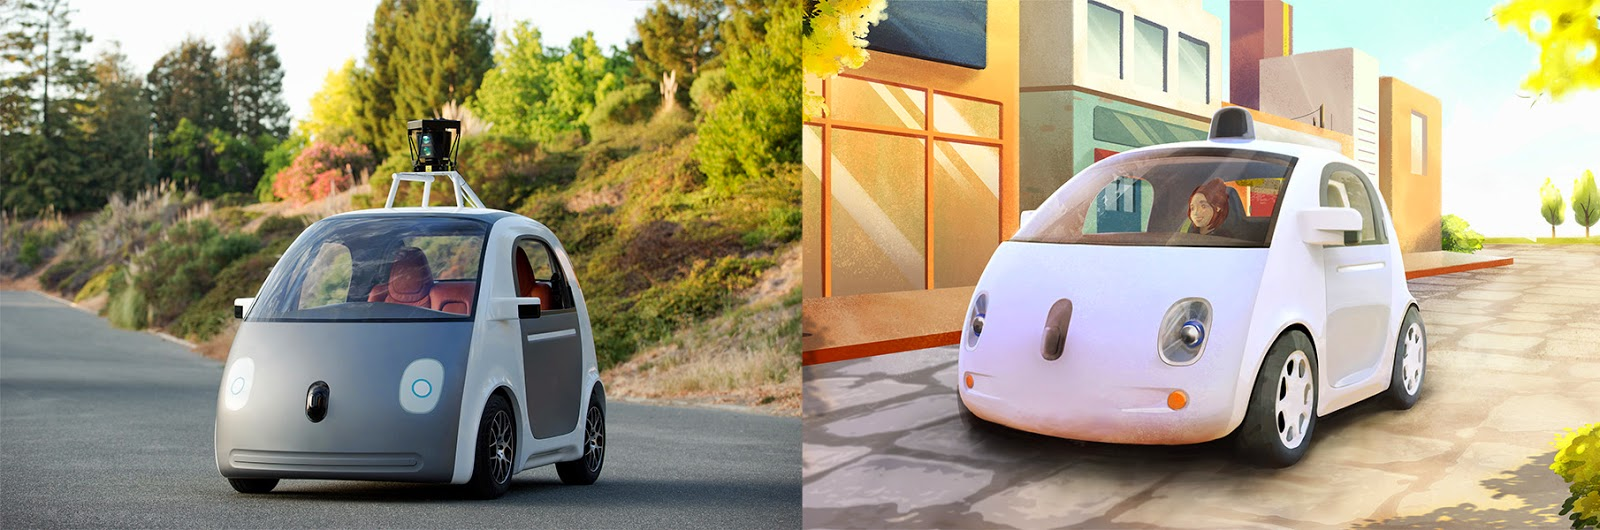 The Week in Tech: Internet Trends, Apple's smart home, Google's self-driving car, and more